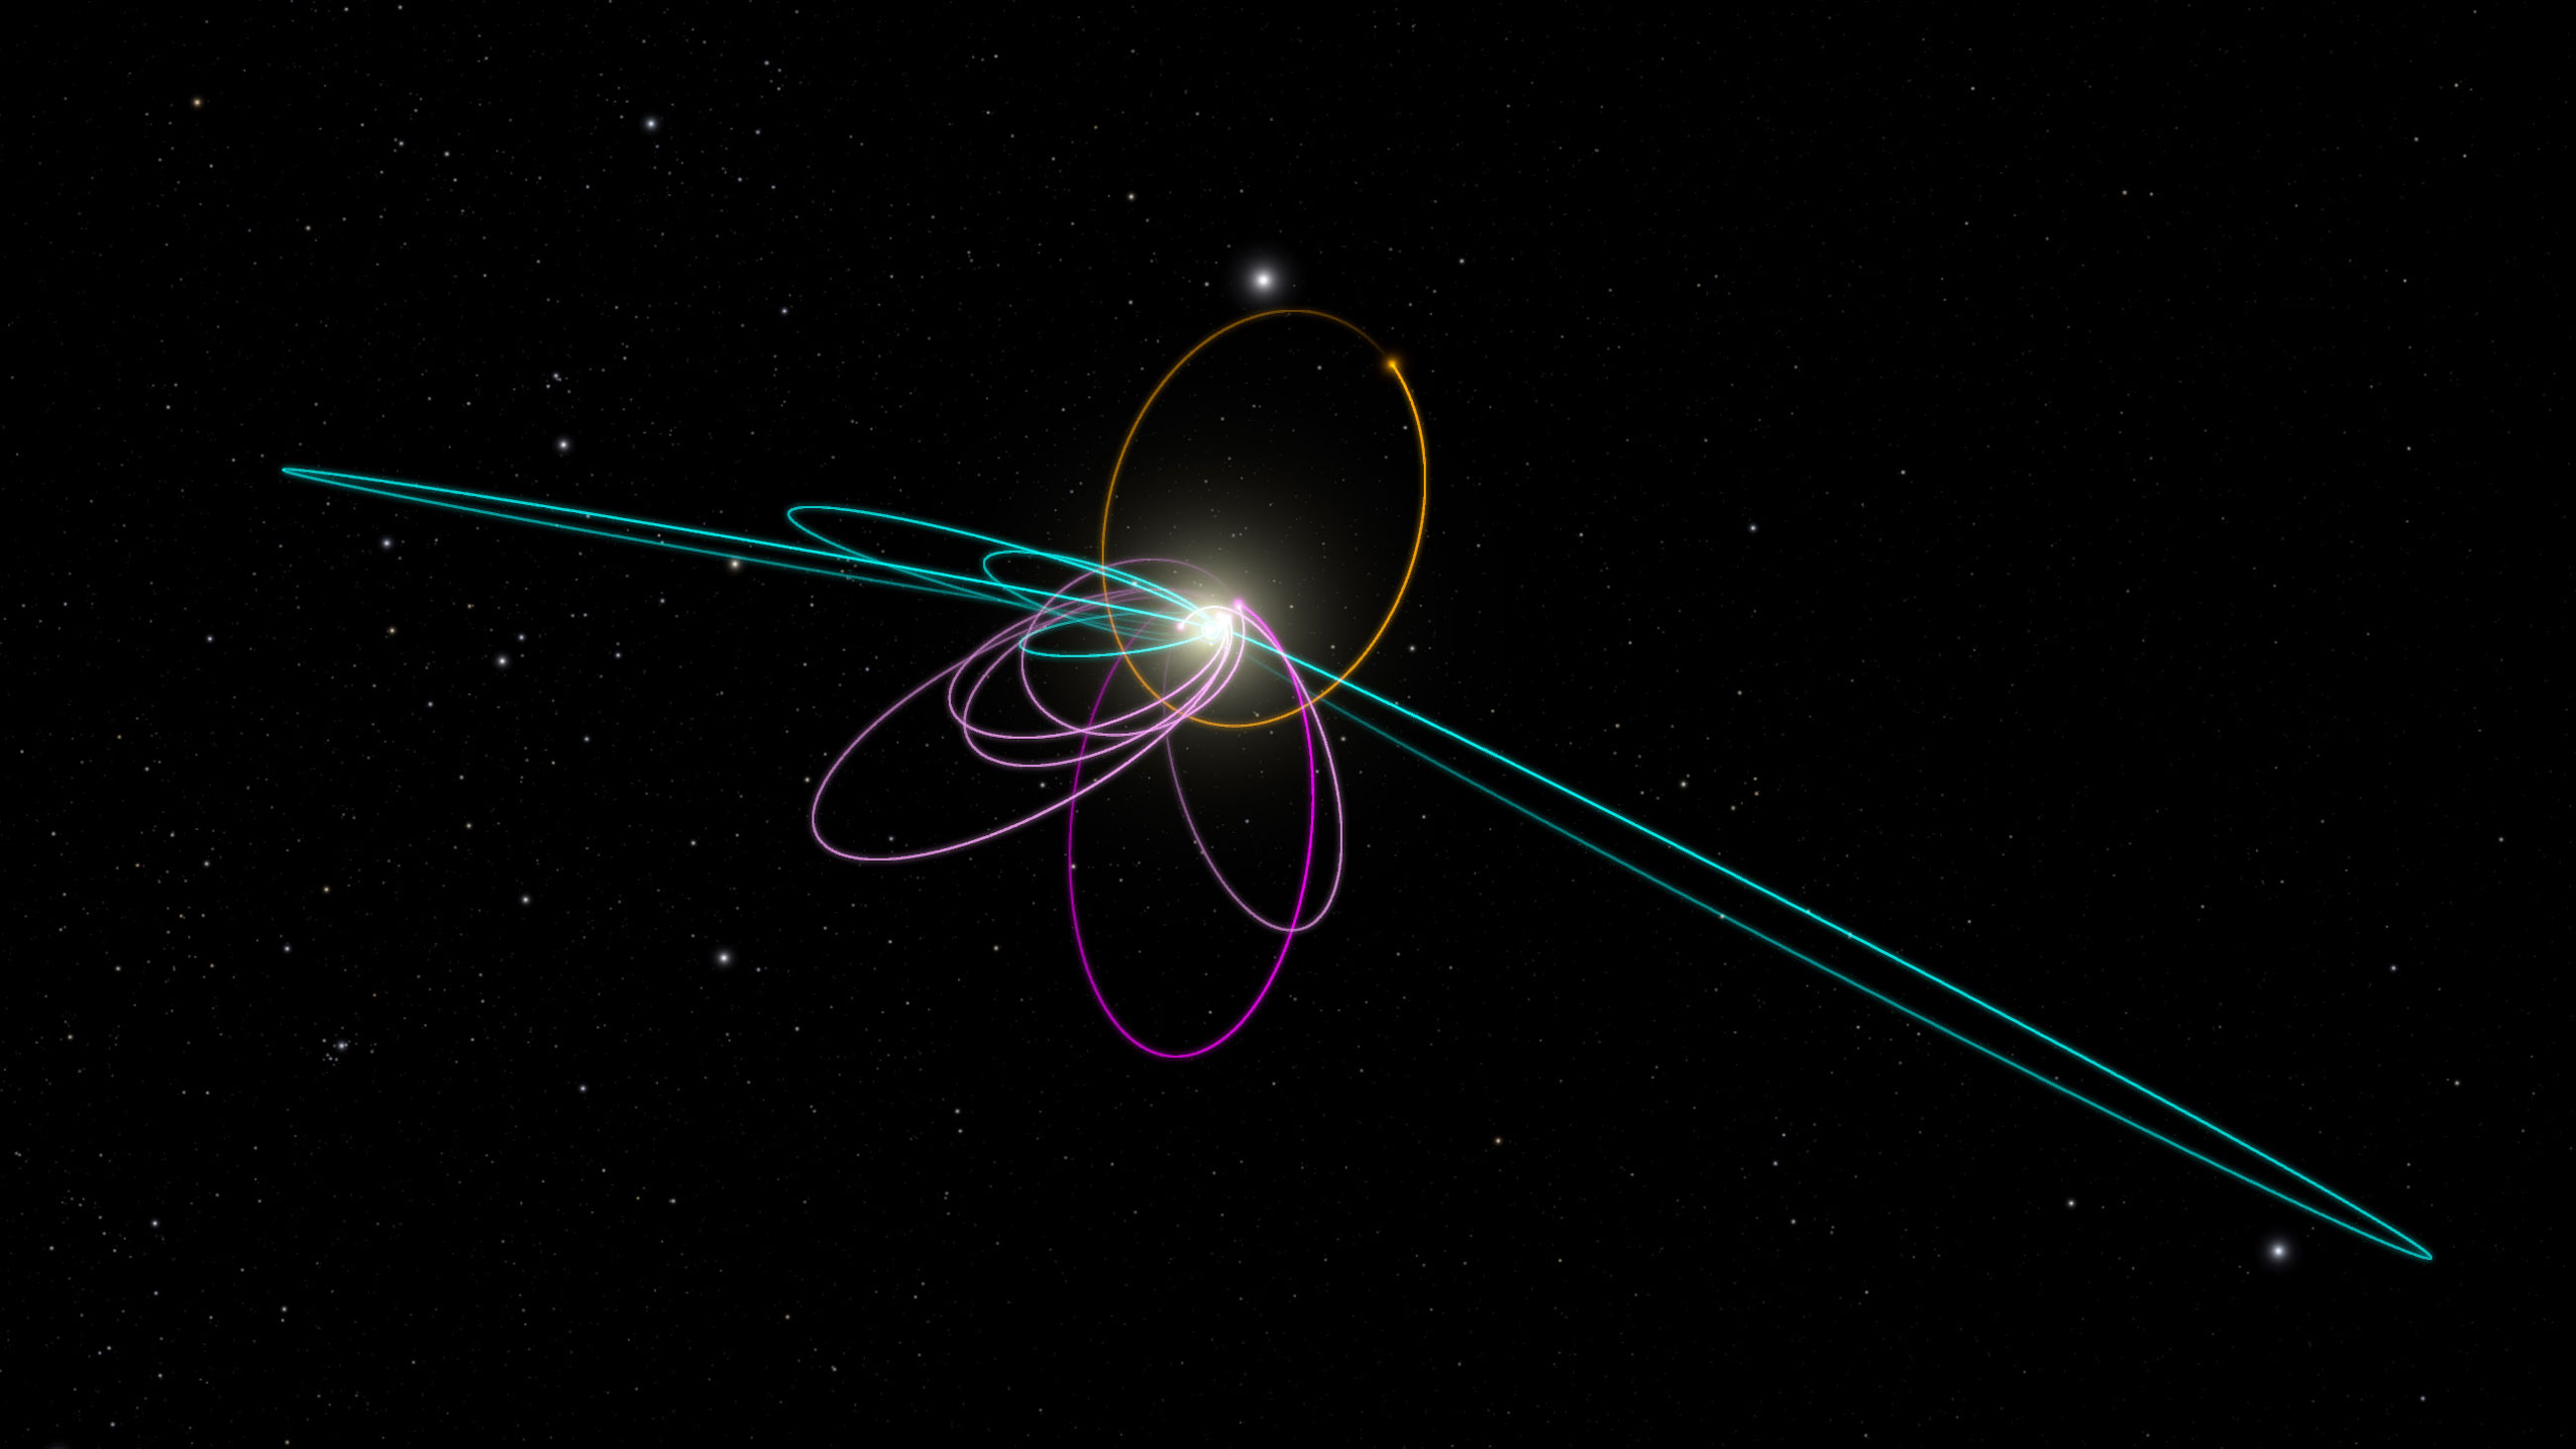 Kuiper belt objects, planet nine